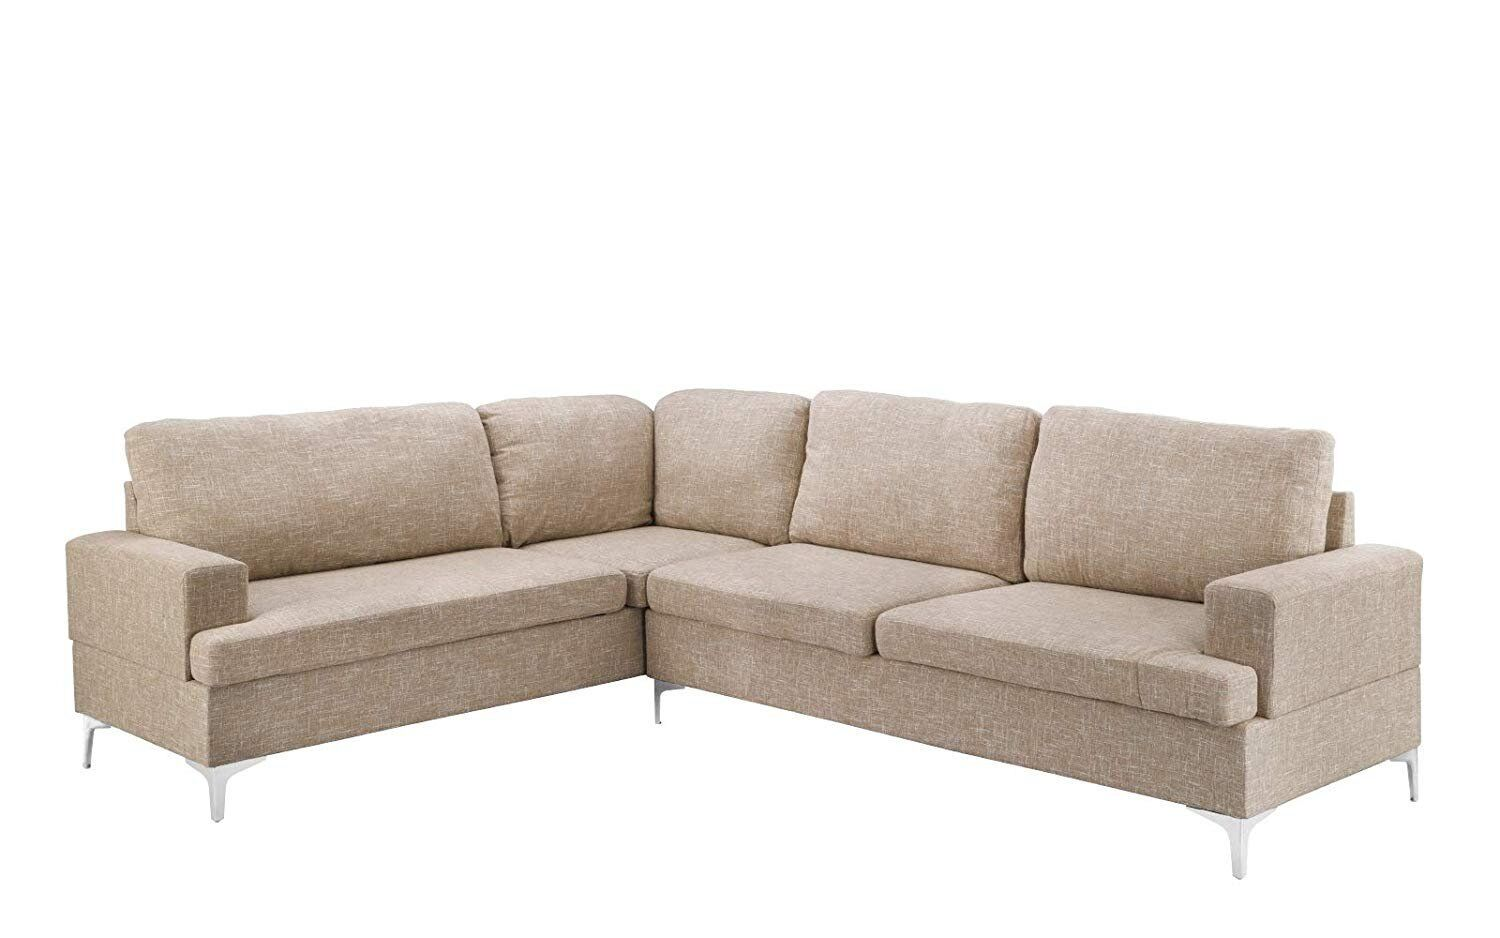 Family Room Sectional Sofa Classic Living Room L-Shape Couch, Linen Fabric  Beige